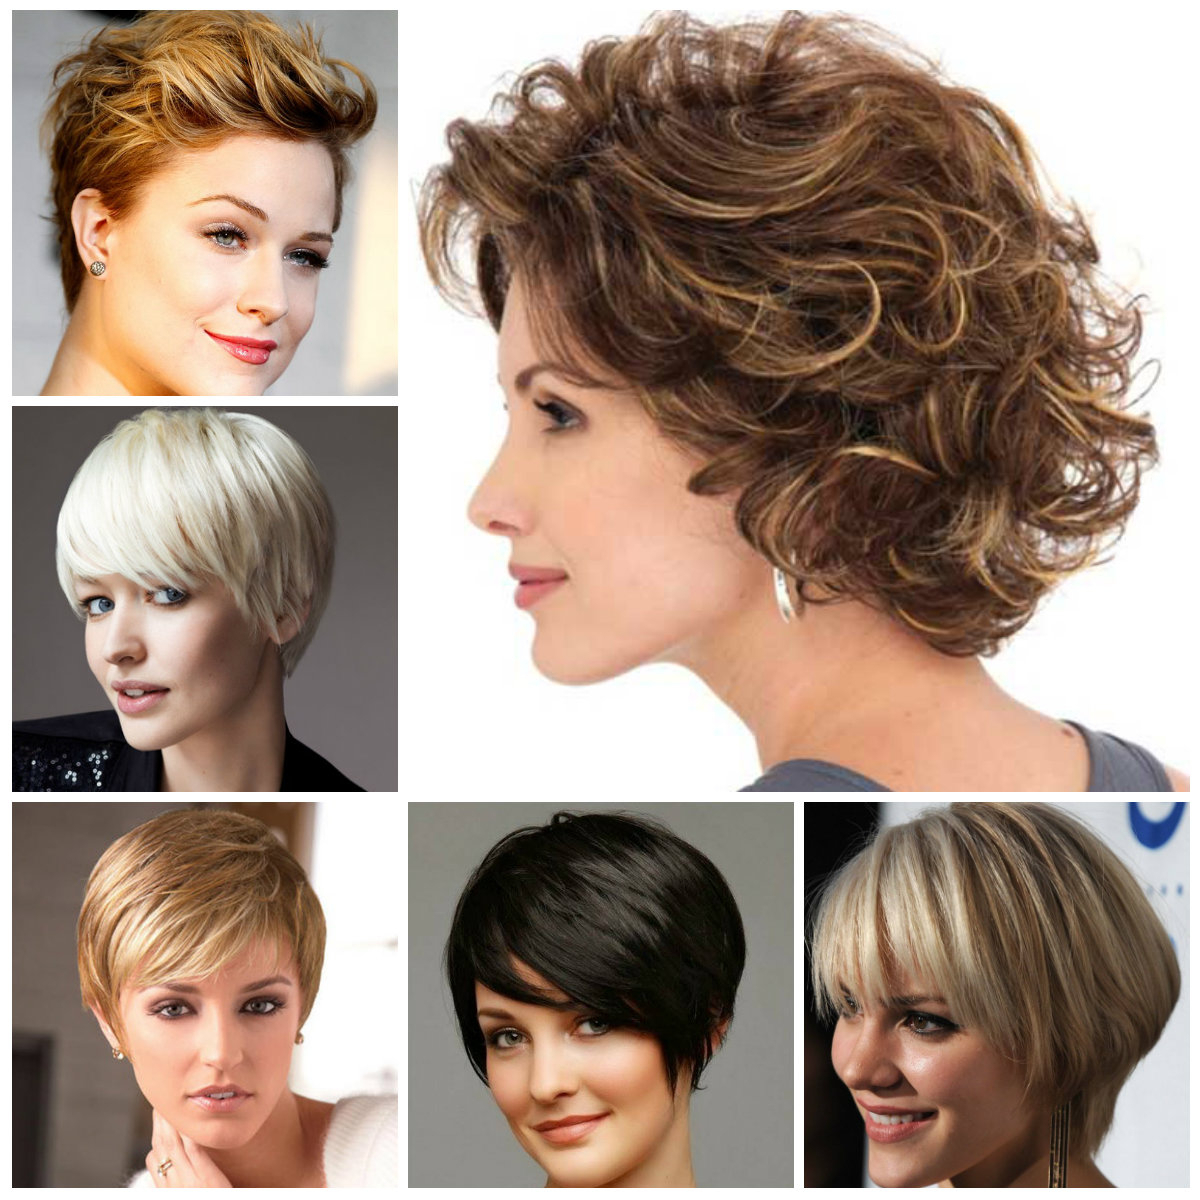 Short Layered Hairstyle Ideas For 2019 | Hairstyles For Women 2019 Inside Pixie Layered Short Haircuts (View 22 of 25)